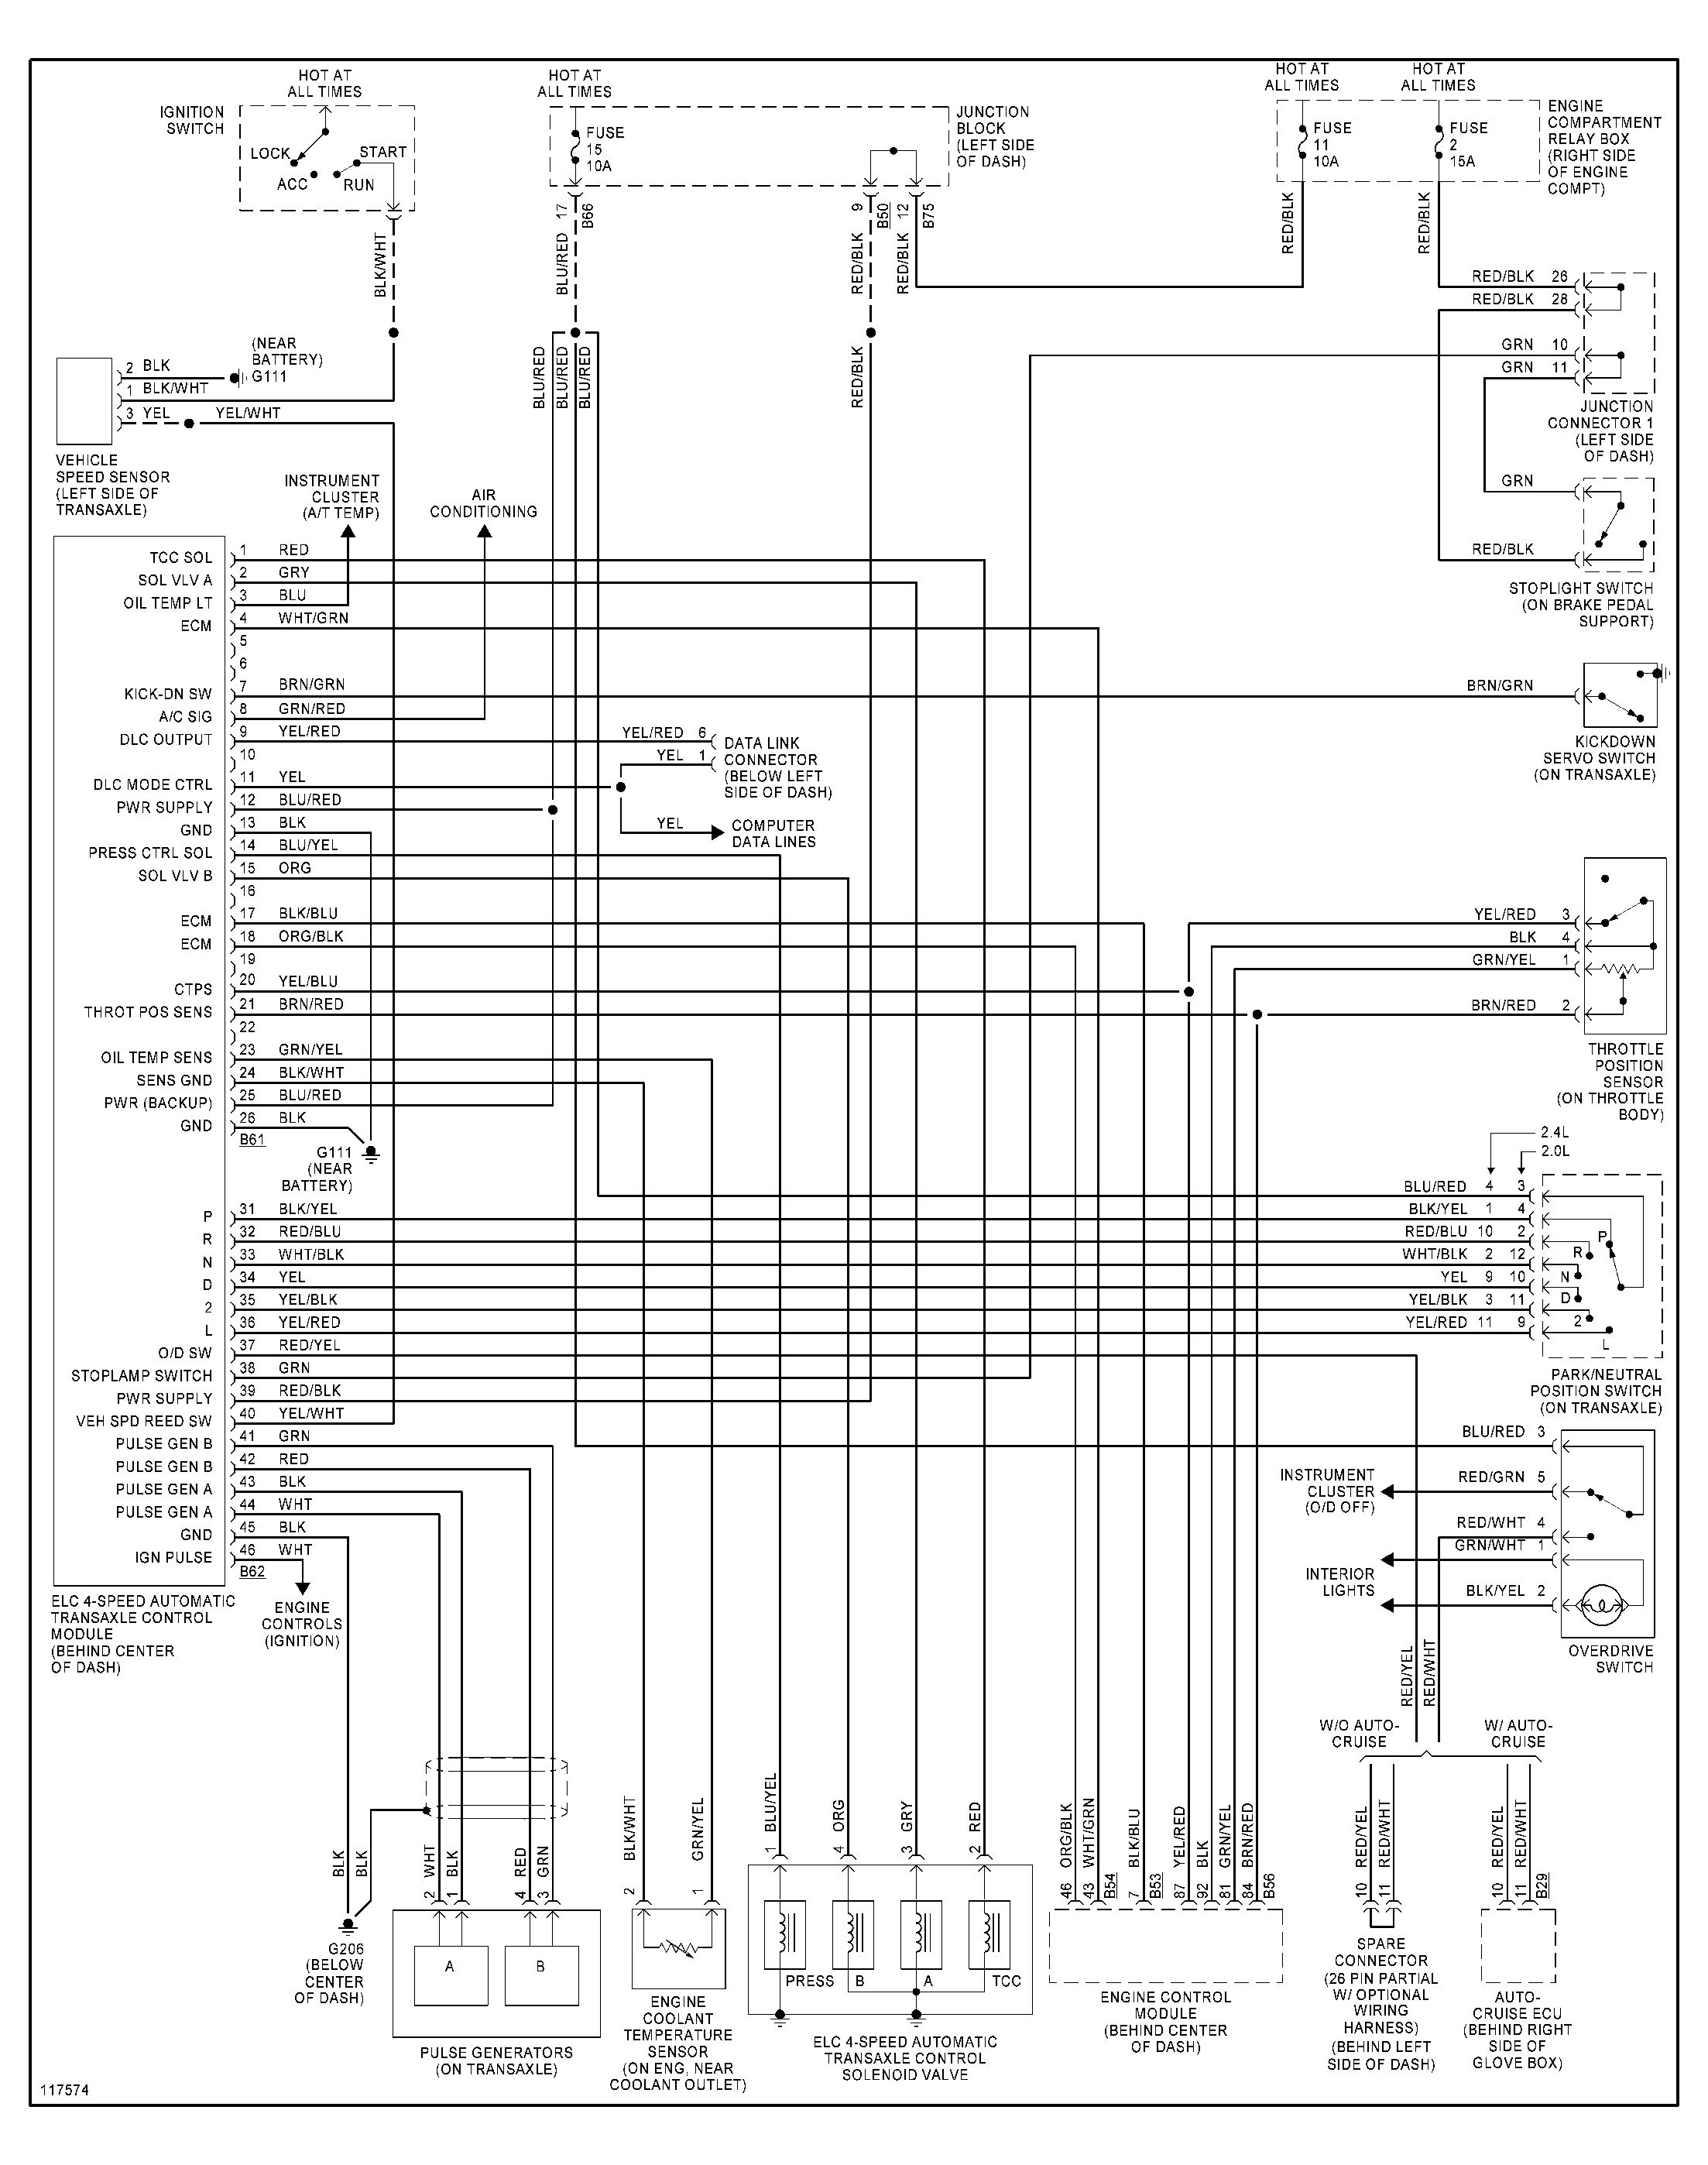 Mitsubishi L200 Engine Diagram 2003 Mitsubishi Galant Ignition Wiring Diagram Of Mitsubishi L200 Engine Diagram